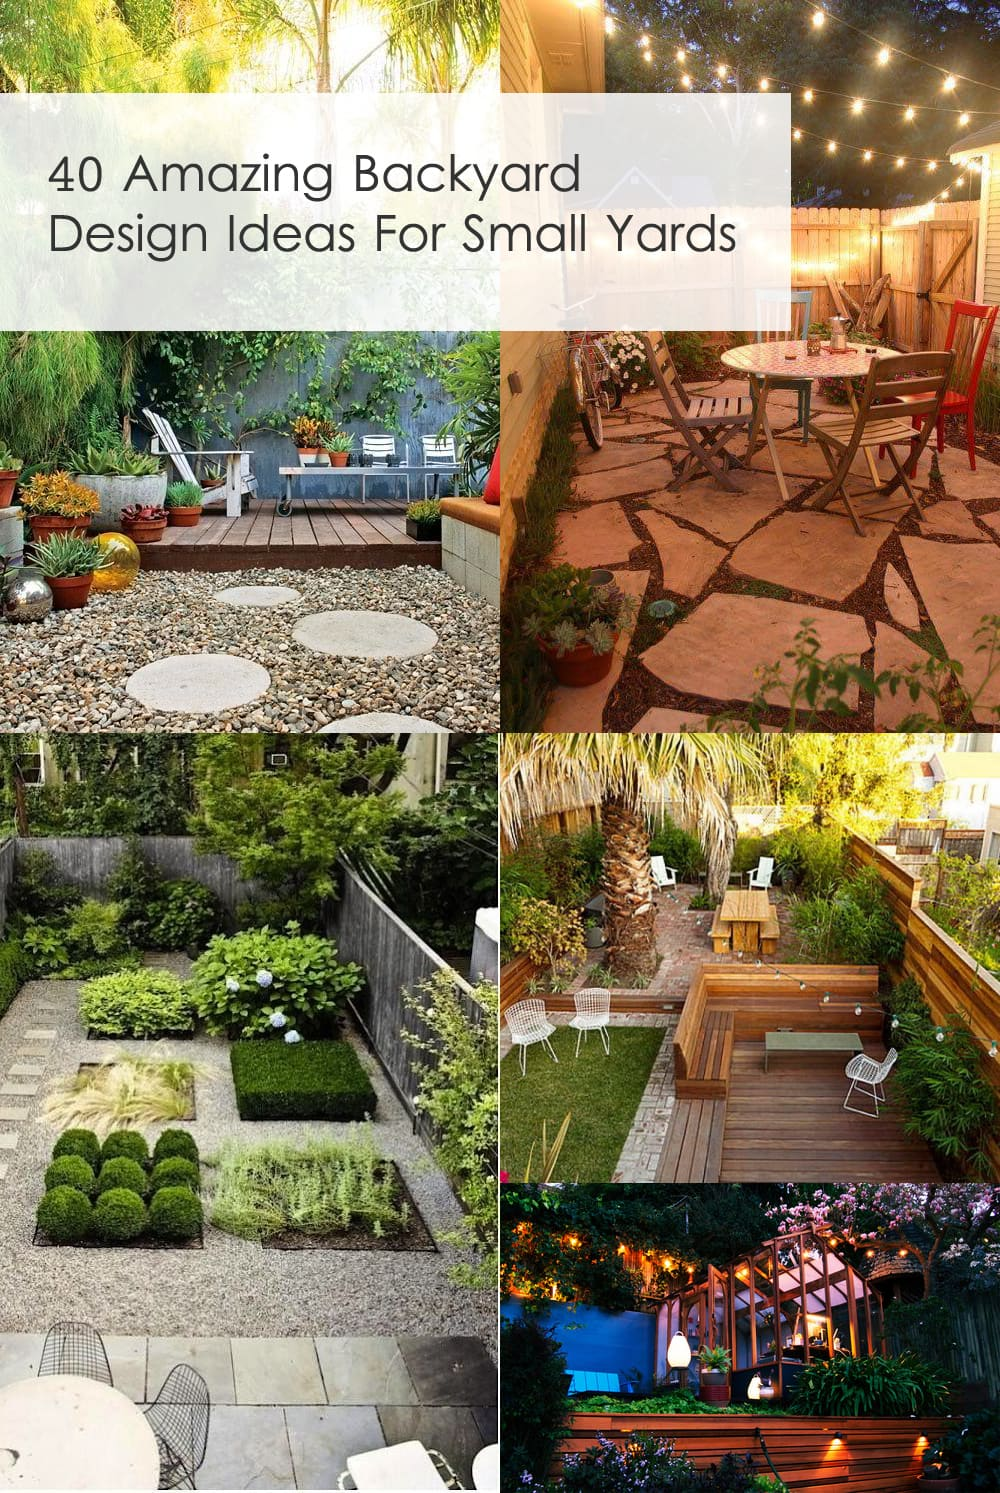 40 amazing design ideas for small backyards - Backyard designs for small yards ...